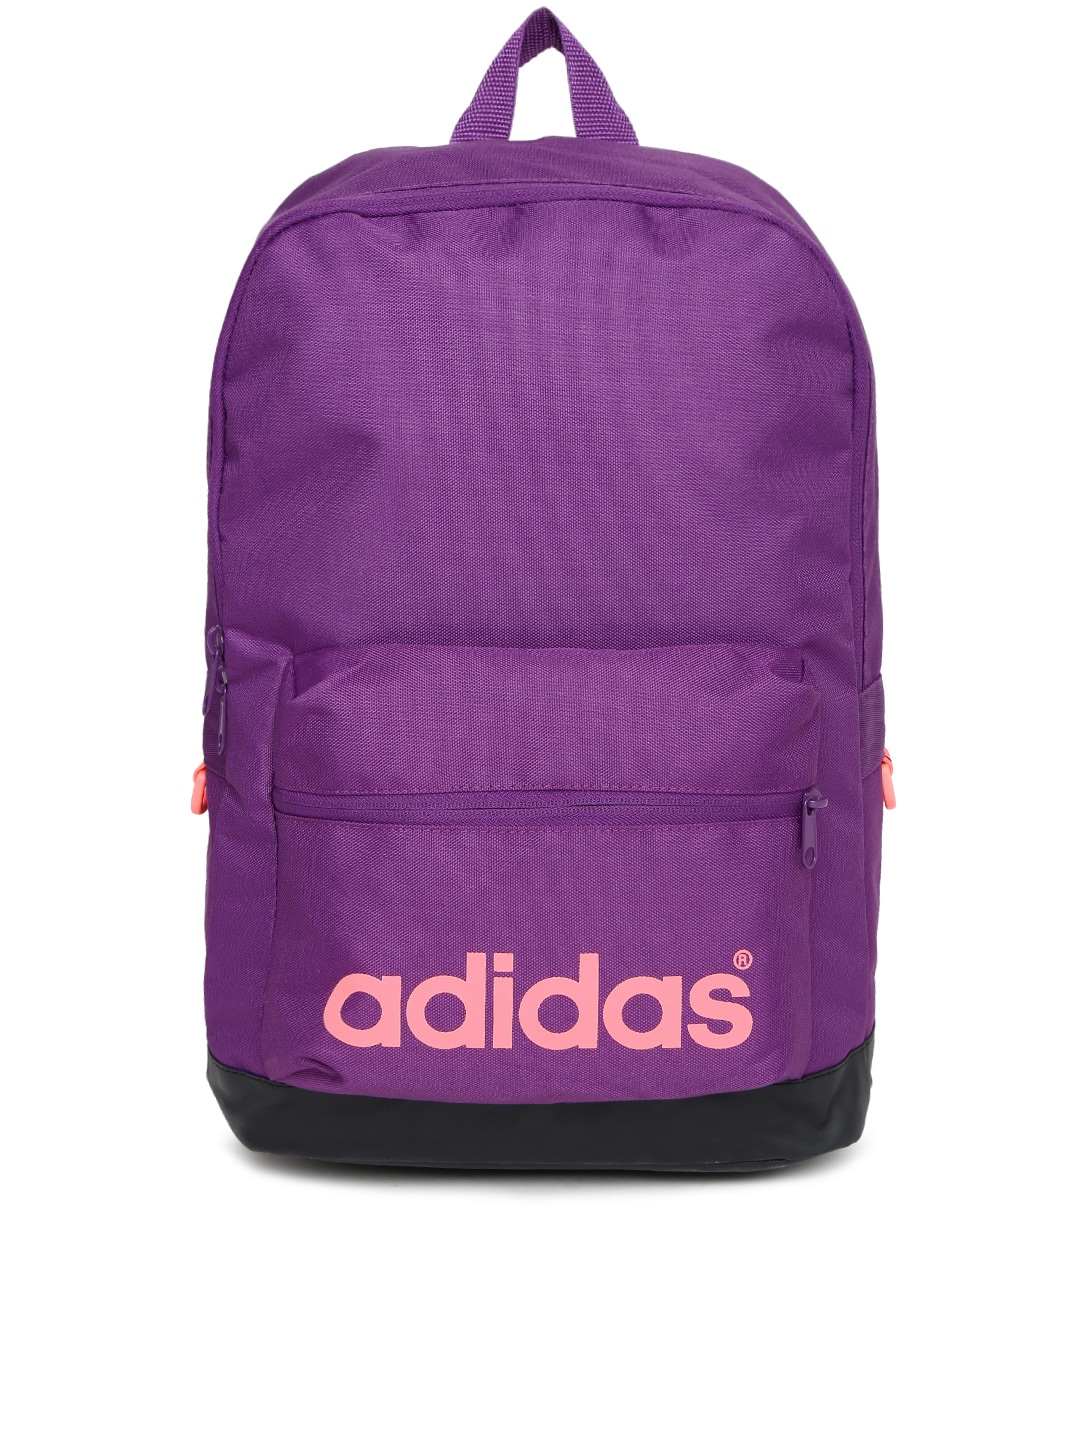 d2b0a4b25d Adidas neo ak2262 Men Purple And Neon Pink Backpack - Best Price ...